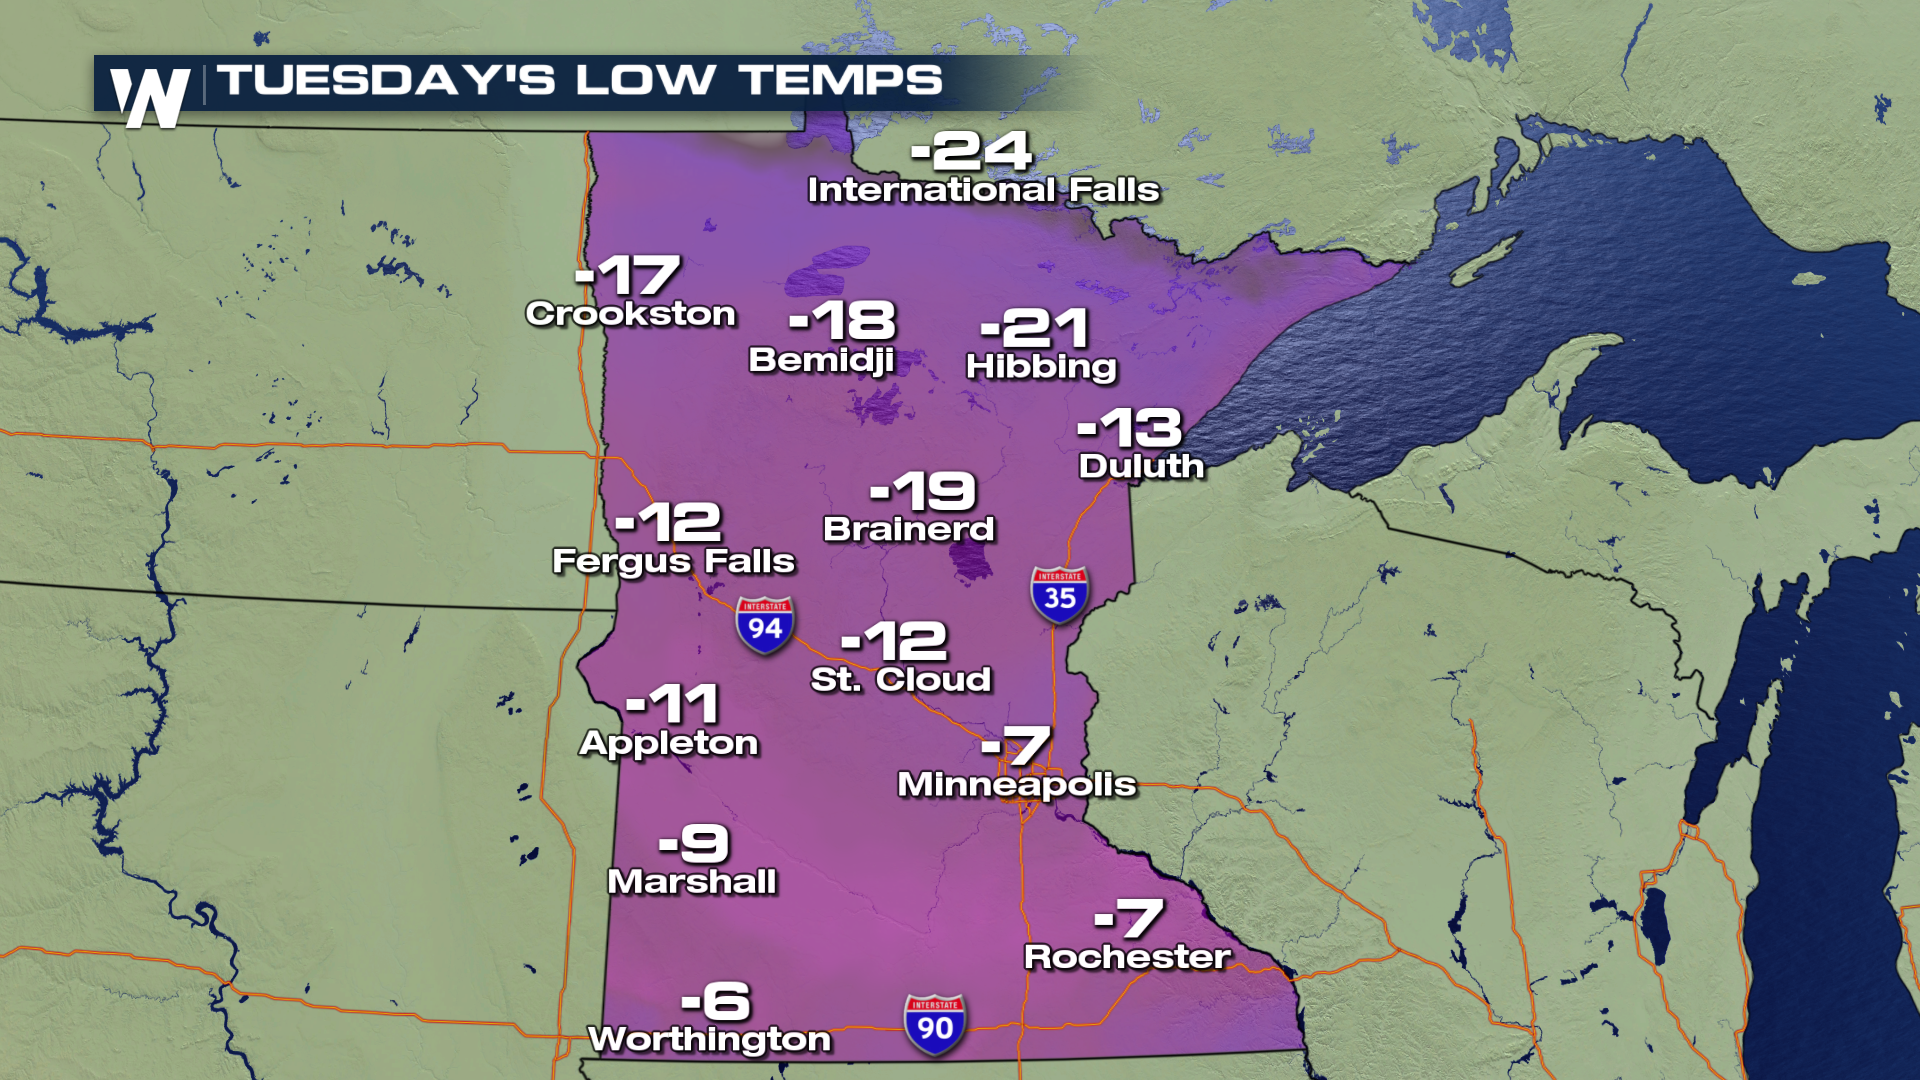 Snow and Brutal Cold Across the High Plains